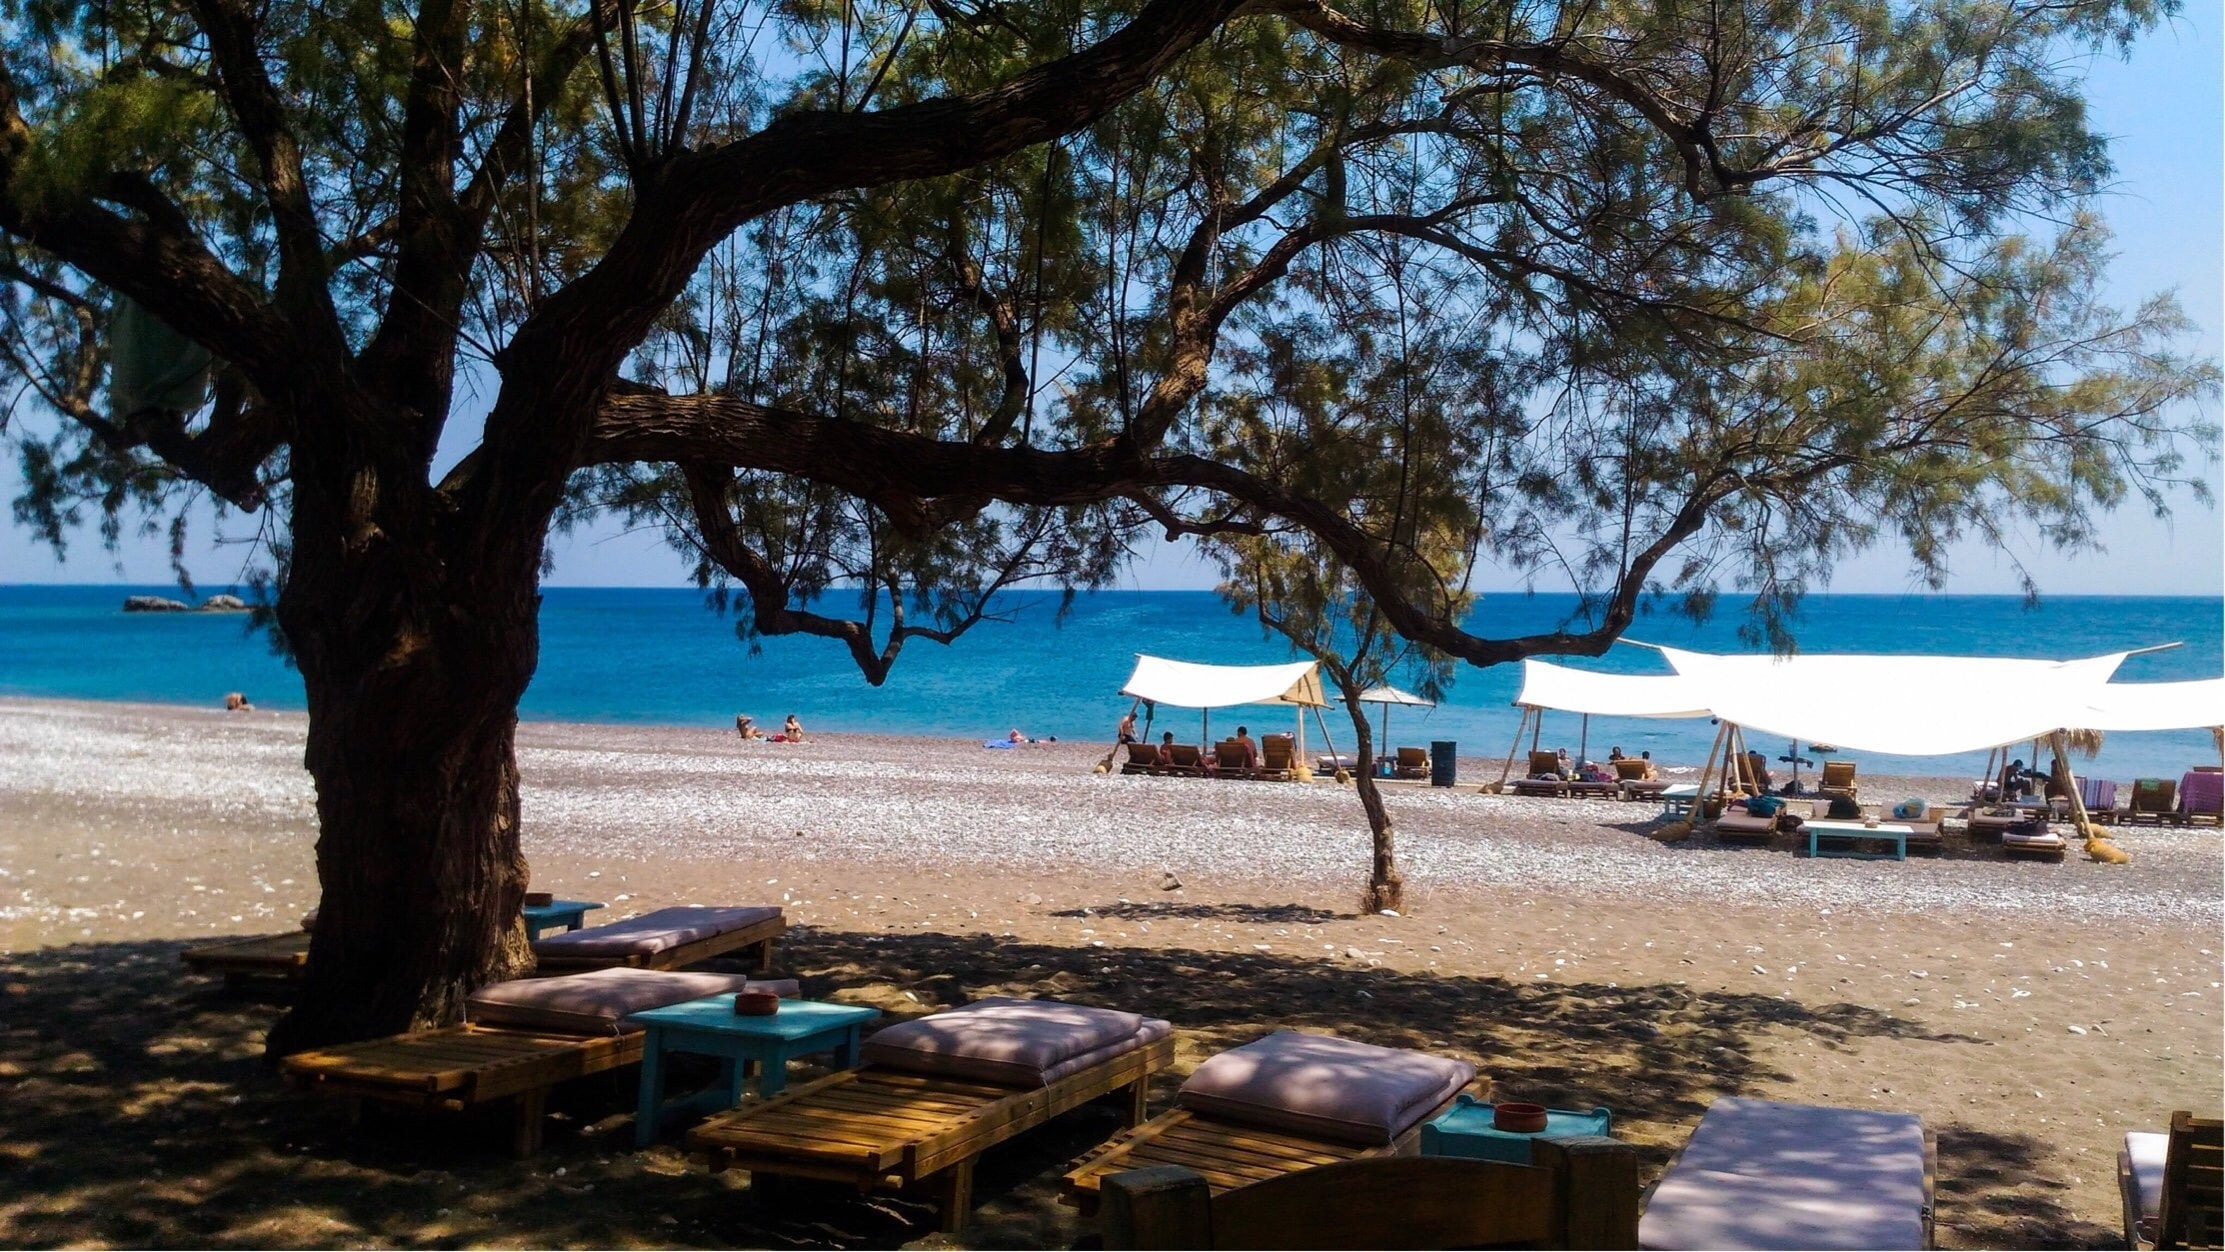 Gennadi_Rhodes the 6 most beautiful beaches